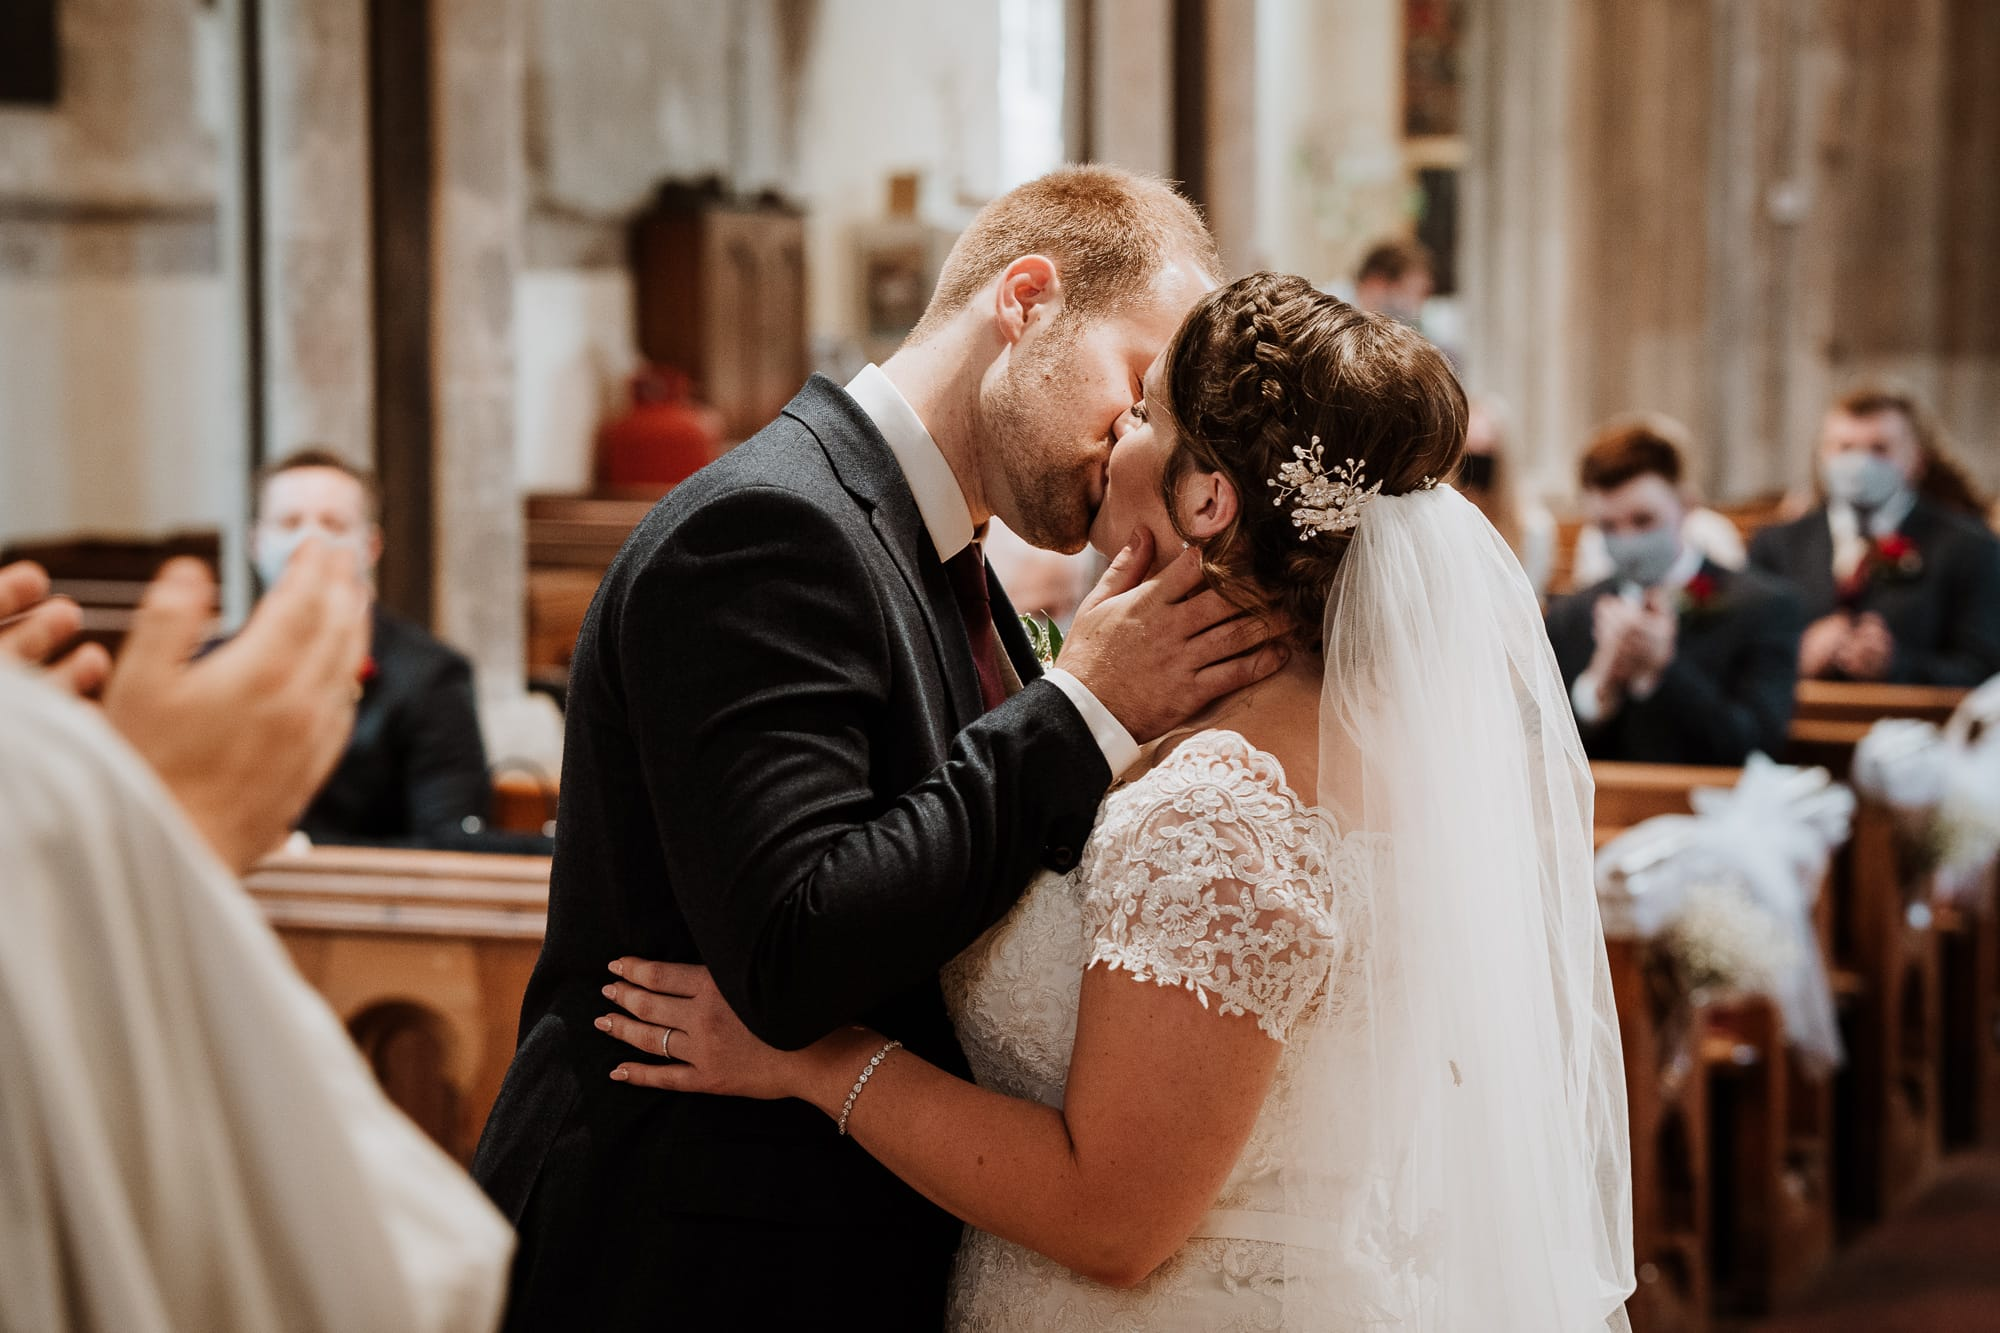 Bride and Groom having their first kiss as Husband and Wife